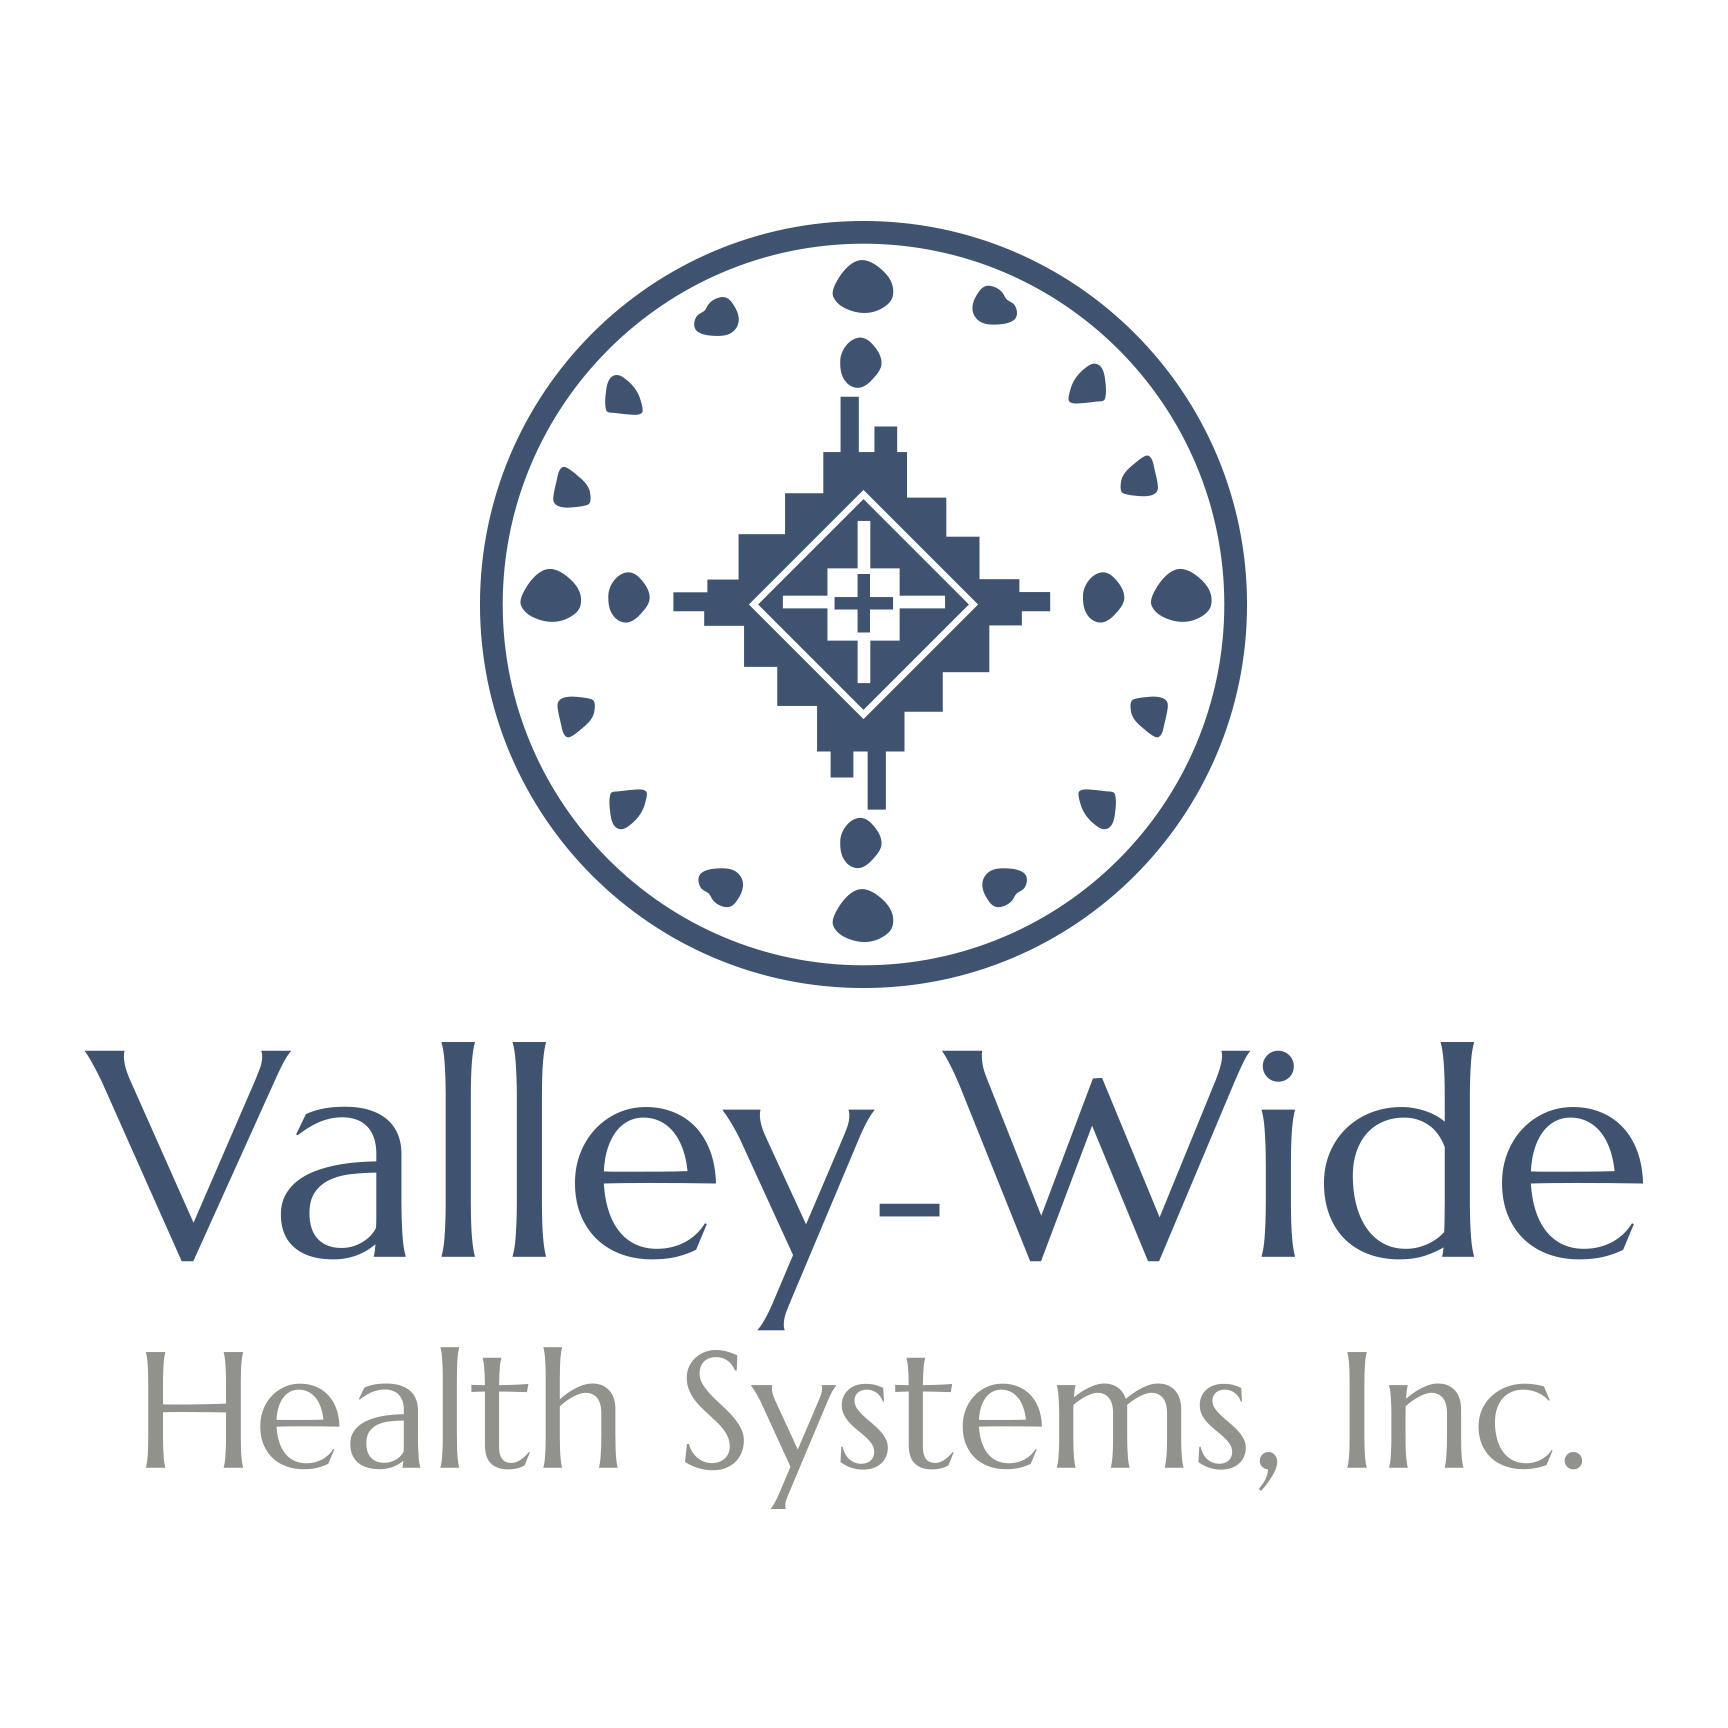 Valley-Wide Cañon City: Valley-Wide Health Systems, Inc.